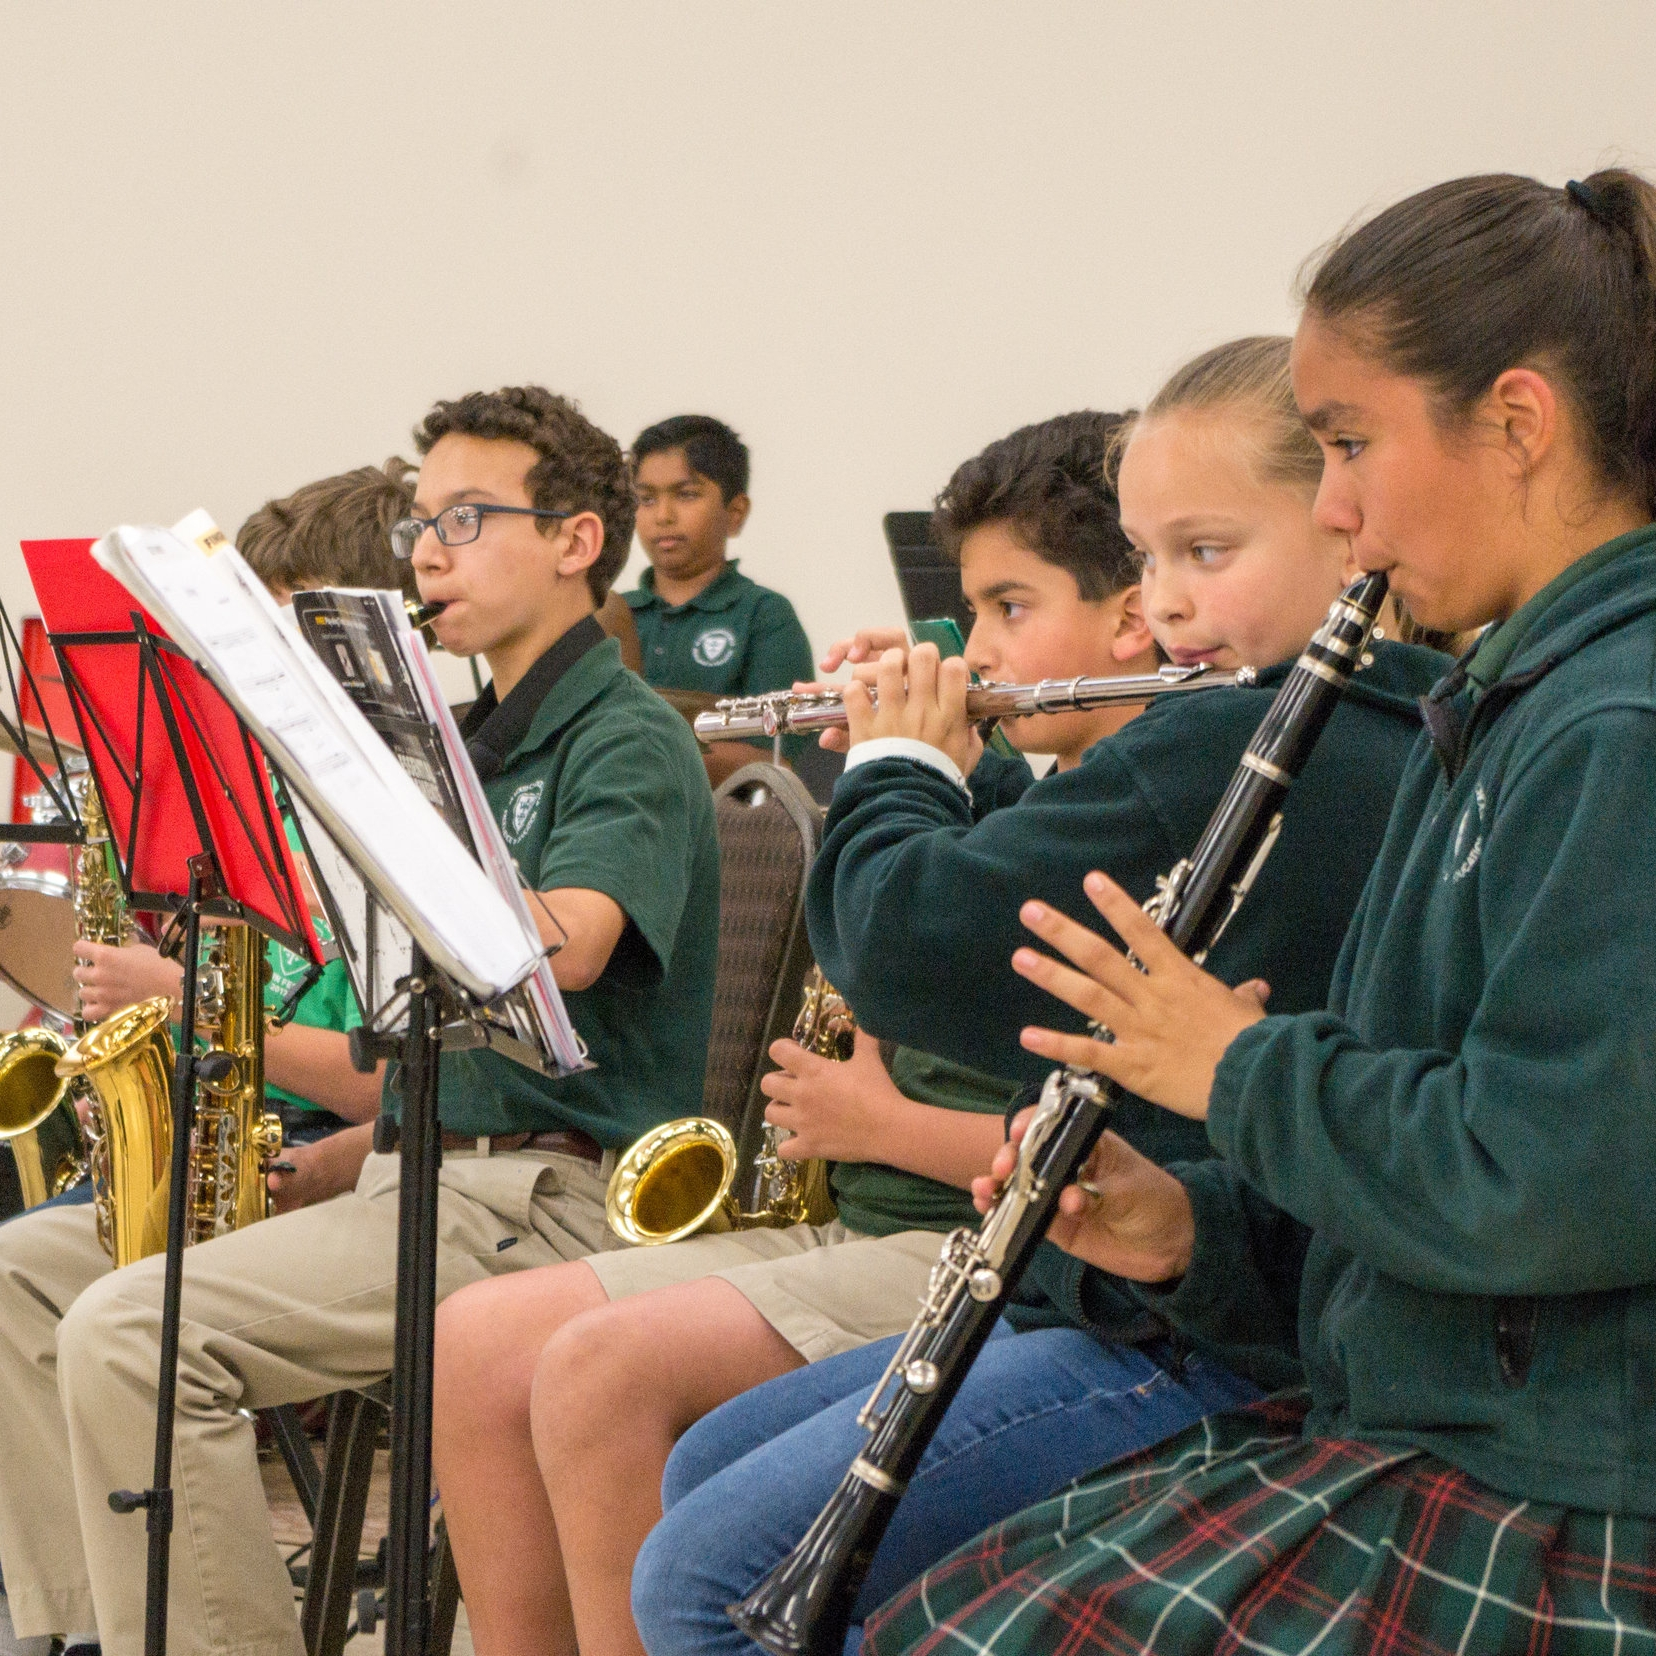 Academic Enrichment  - We offer more than just a classroom education at SLCS, There are many opportunities for students to explore their interests and cultivate their talents during the school day and in after school activities:* Private Schools Interscholastic Association* Choir* Science Fair* Math Pentathalon* Rock Band* French Culture* Spanish* Run Club* Scouts* Theater (One Act Play)* Electives